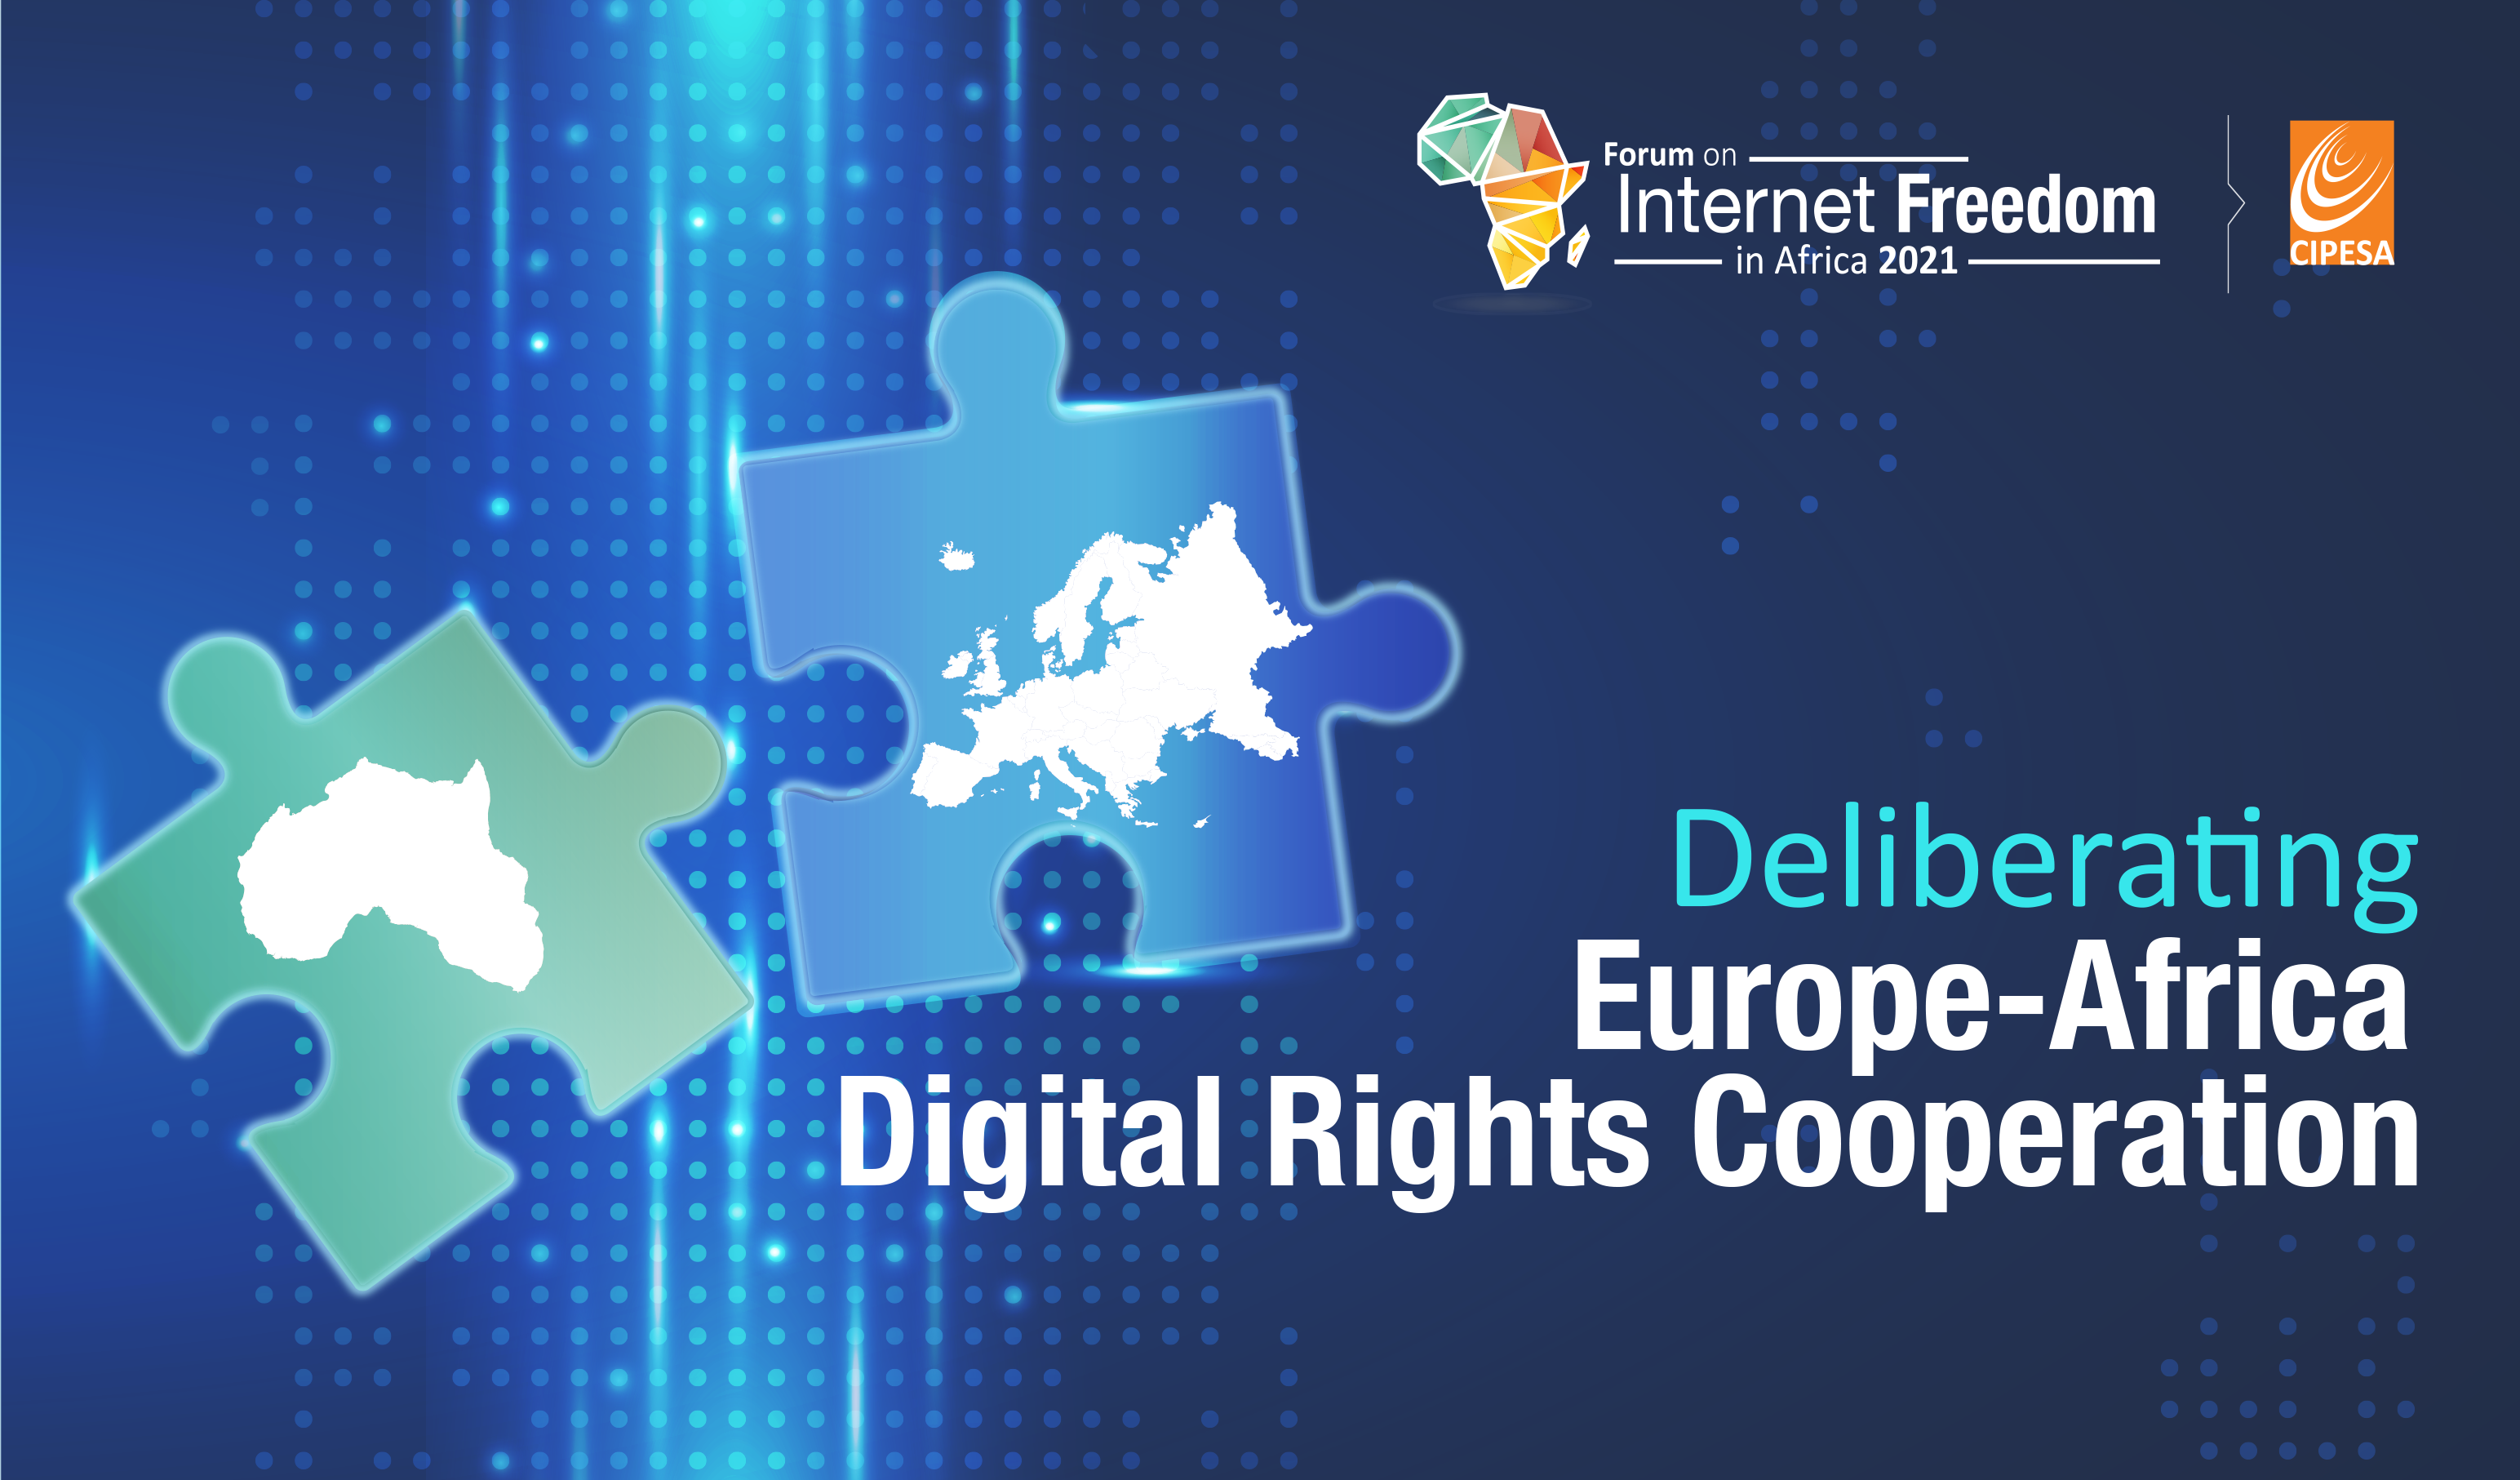 #FIFAfrica21: Deliberating Europe-Africa Digital Rights Cooperation